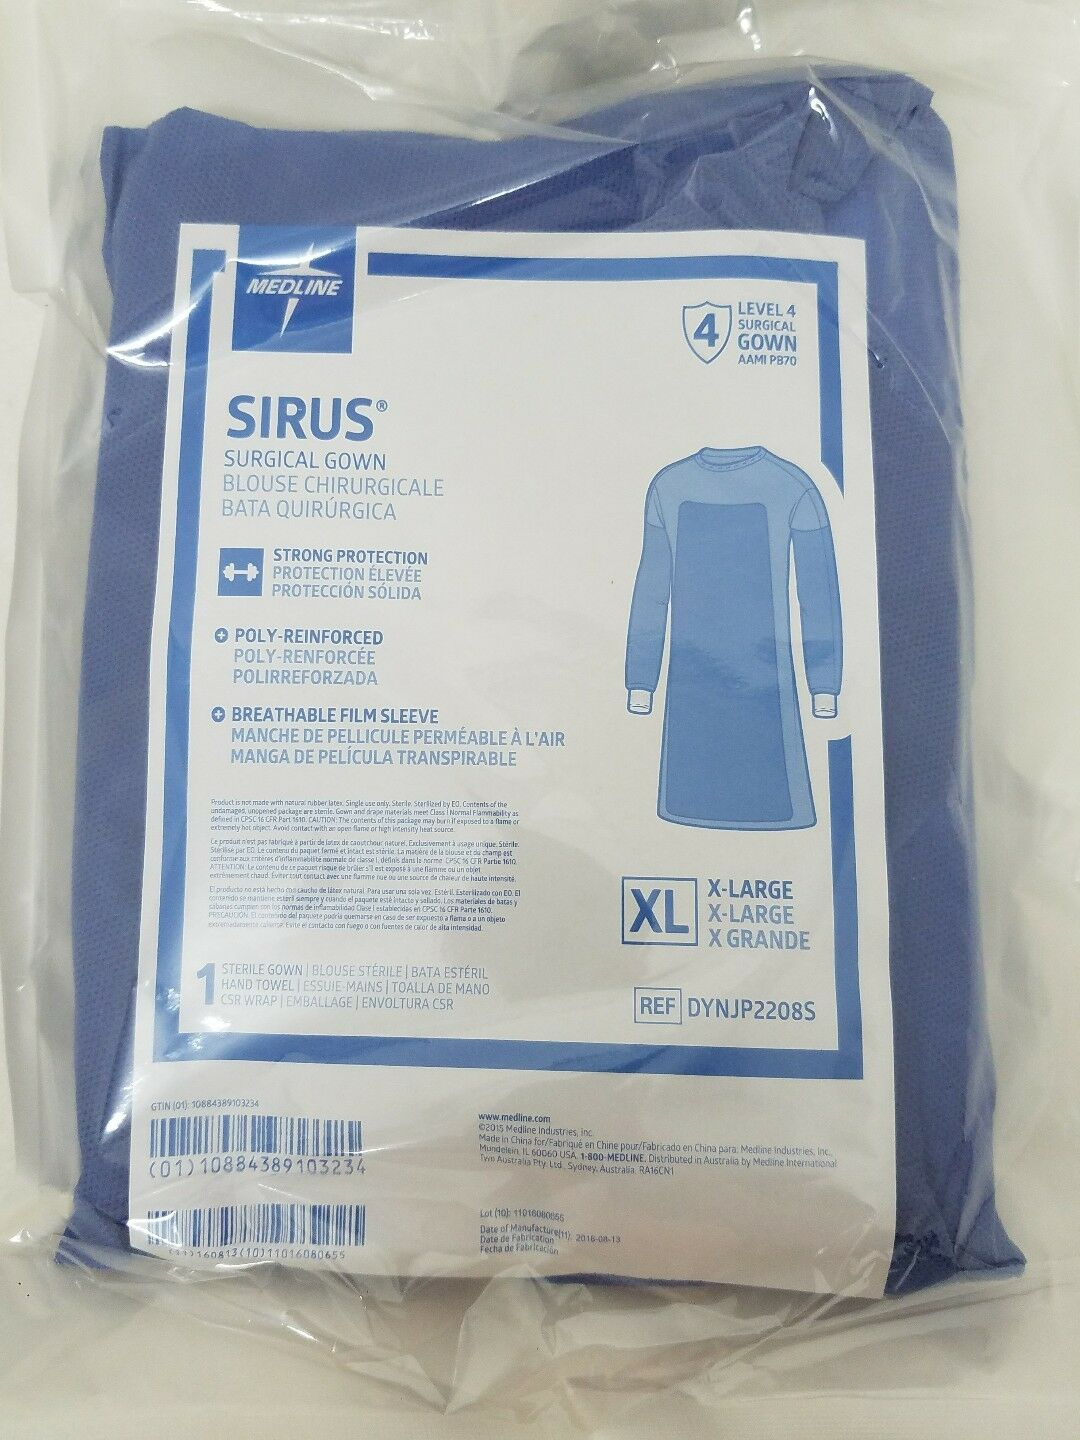 6 MEDLINE SIRUS Surgical Gown XLDYNJP2228S Sterile Poly-Reinforced ...